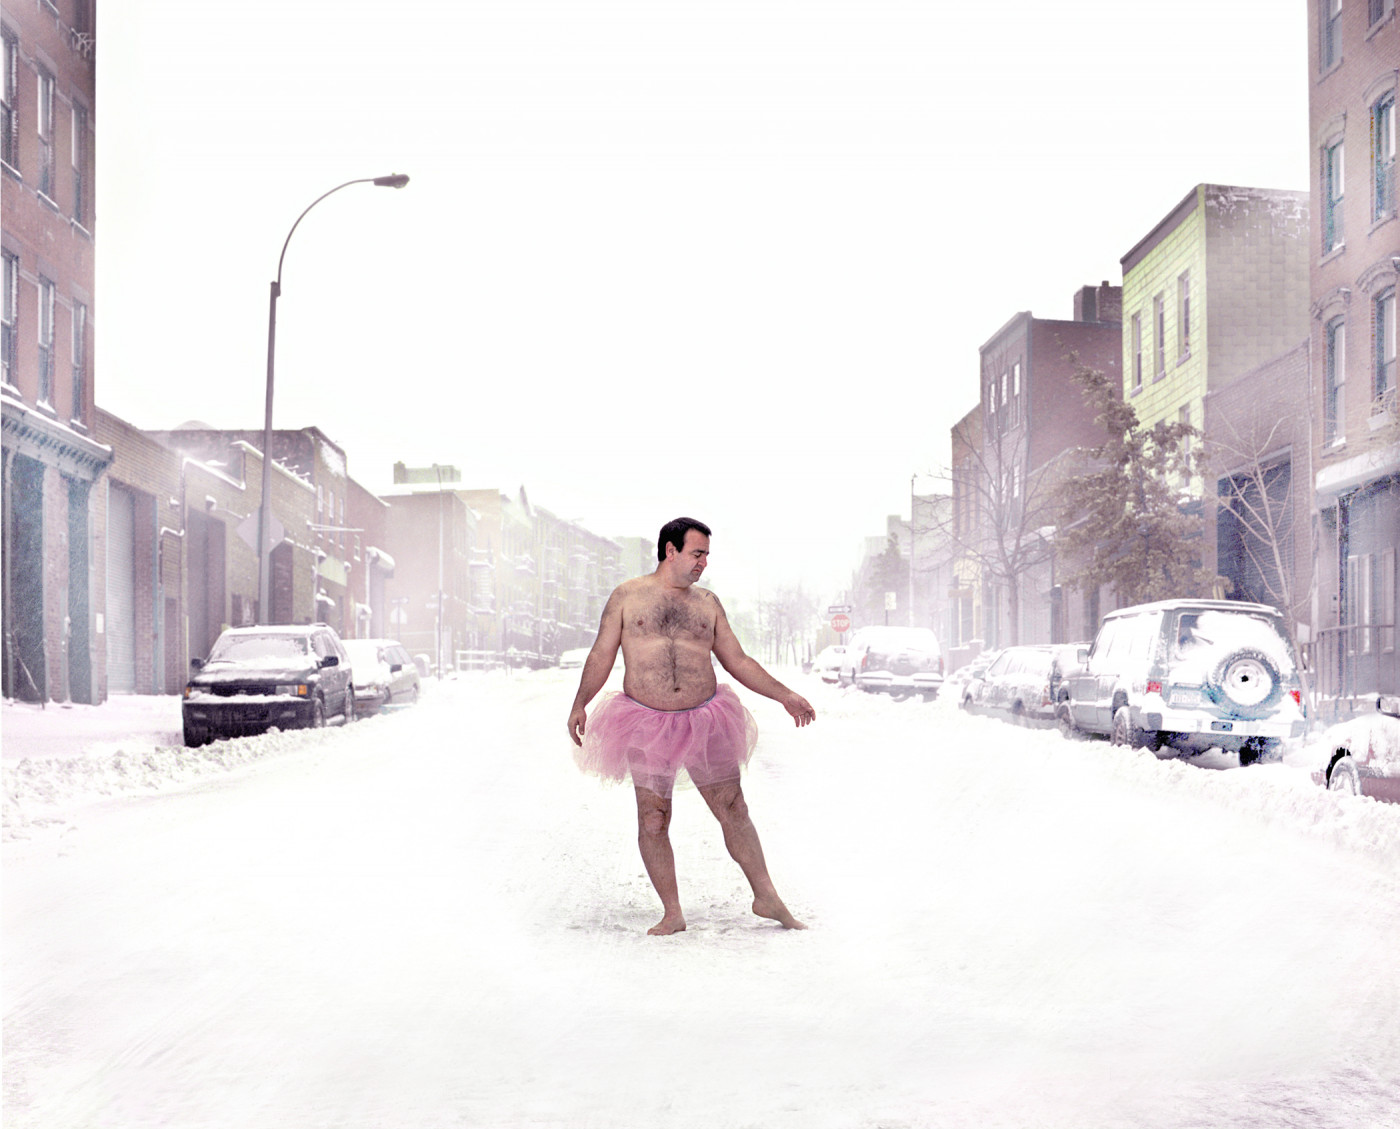 Bob-Carey-Snow-Brooklyn-New-York-2003-c-print